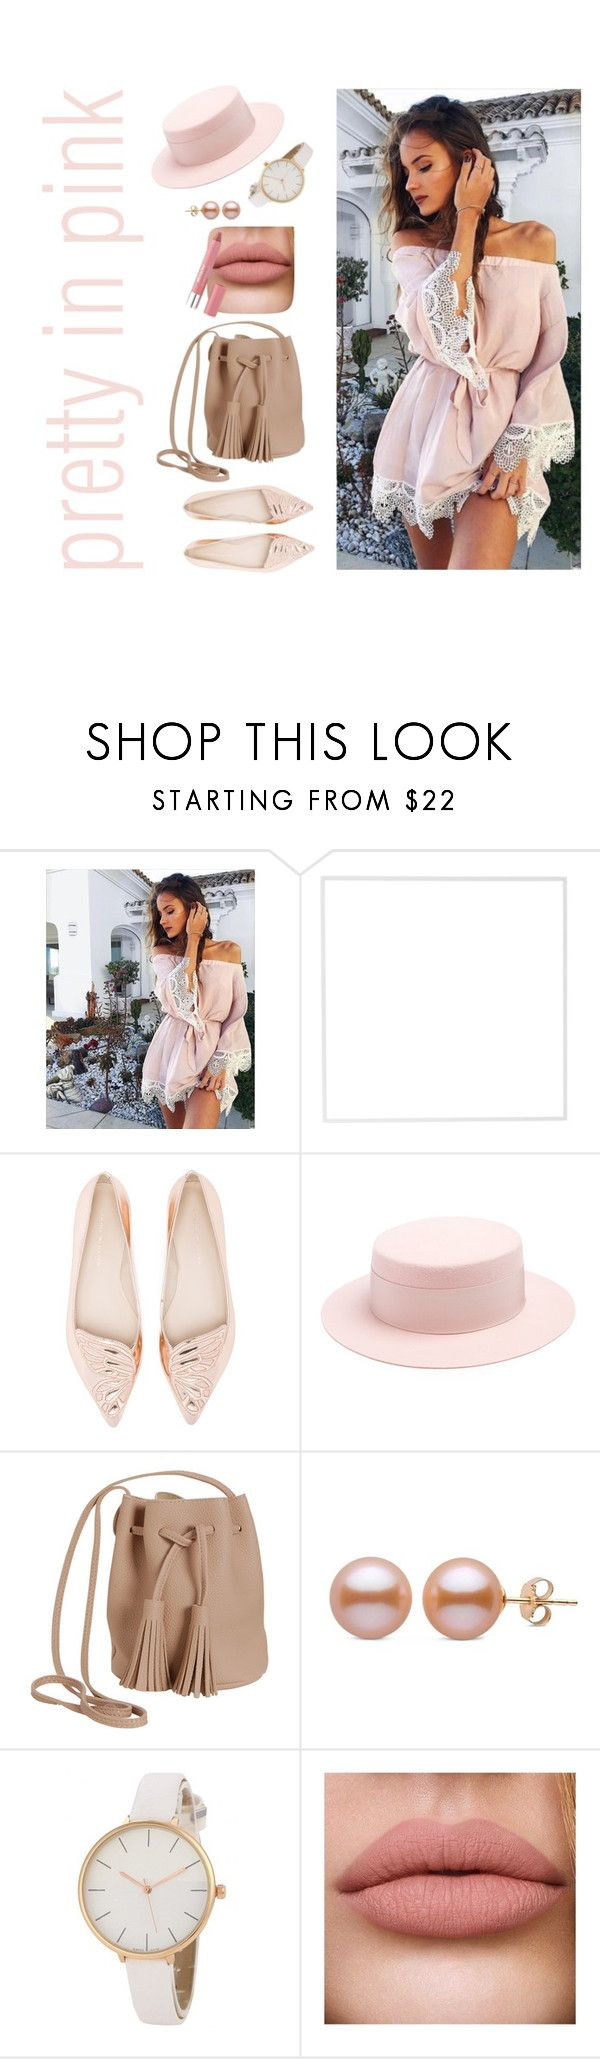 """""""pretty in {pink}"""" by traylor-ketchup ❤ liked on Polyvore featuring Menu, Sophia Webster, Federica Moretti, Humble Chic and Revlon"""